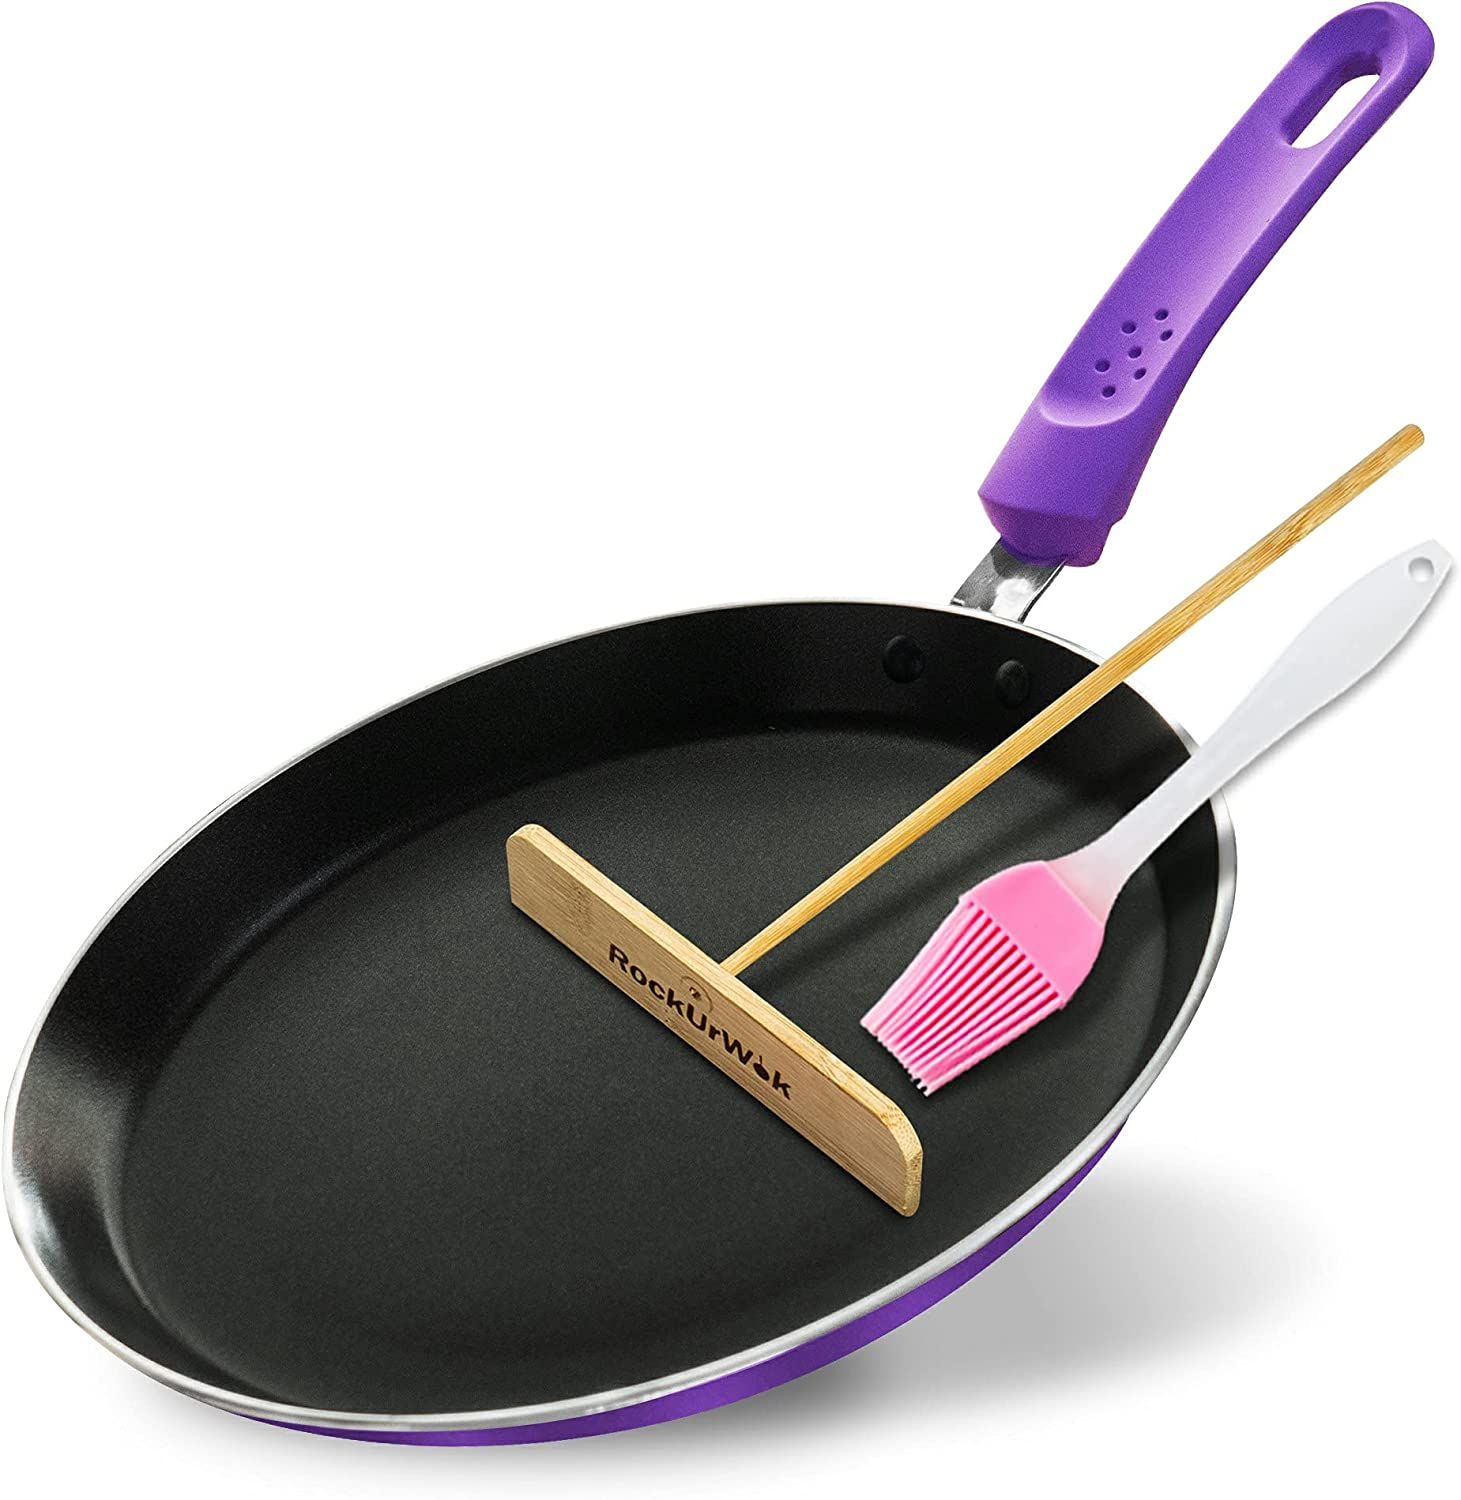 Crepe Pan ROCKURWOK Nonstick Pancake with Elegant Handle Silicone F 2021 spring and summer new